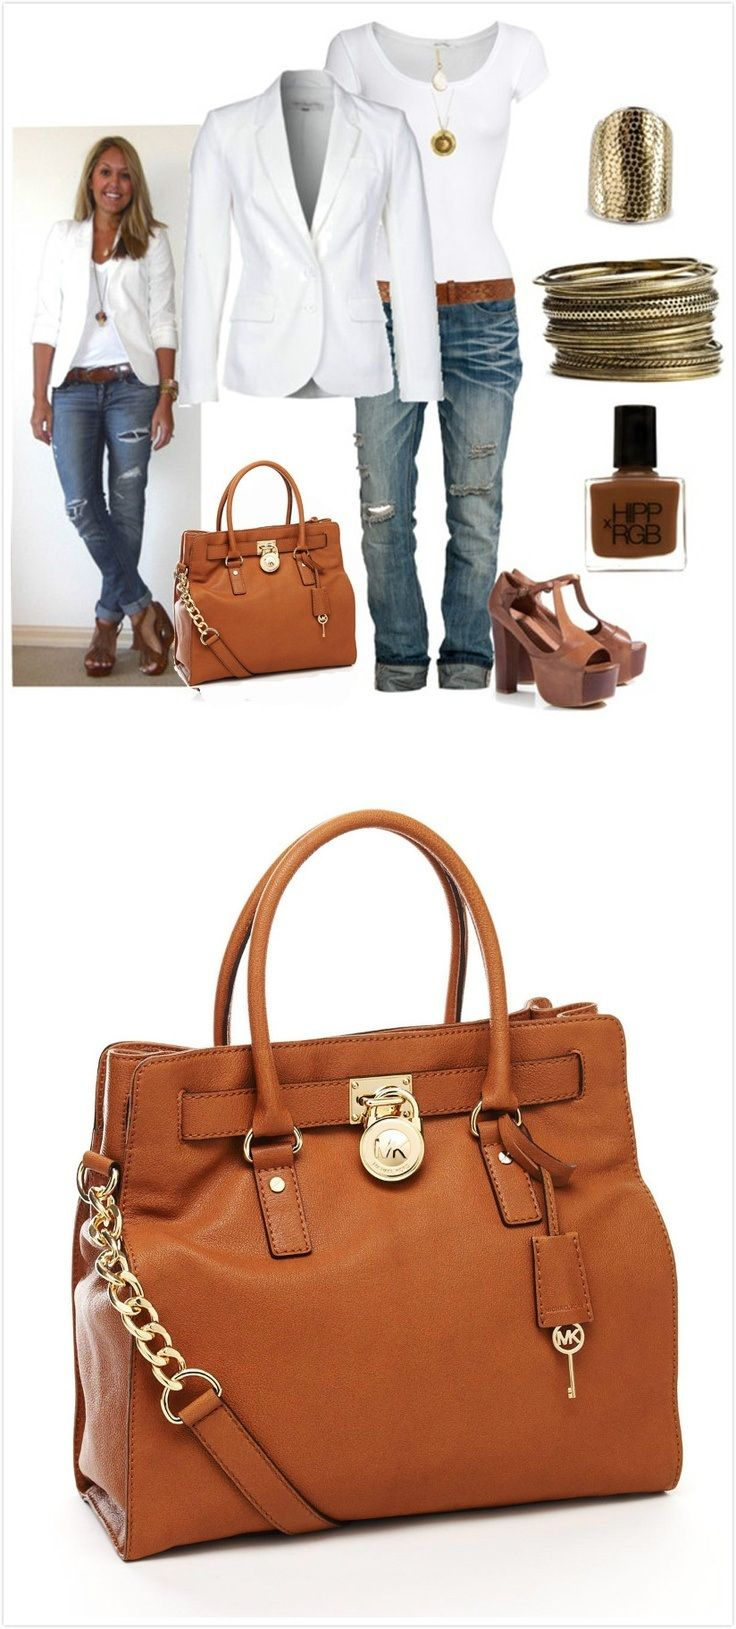 Michael kors clothing outlet online